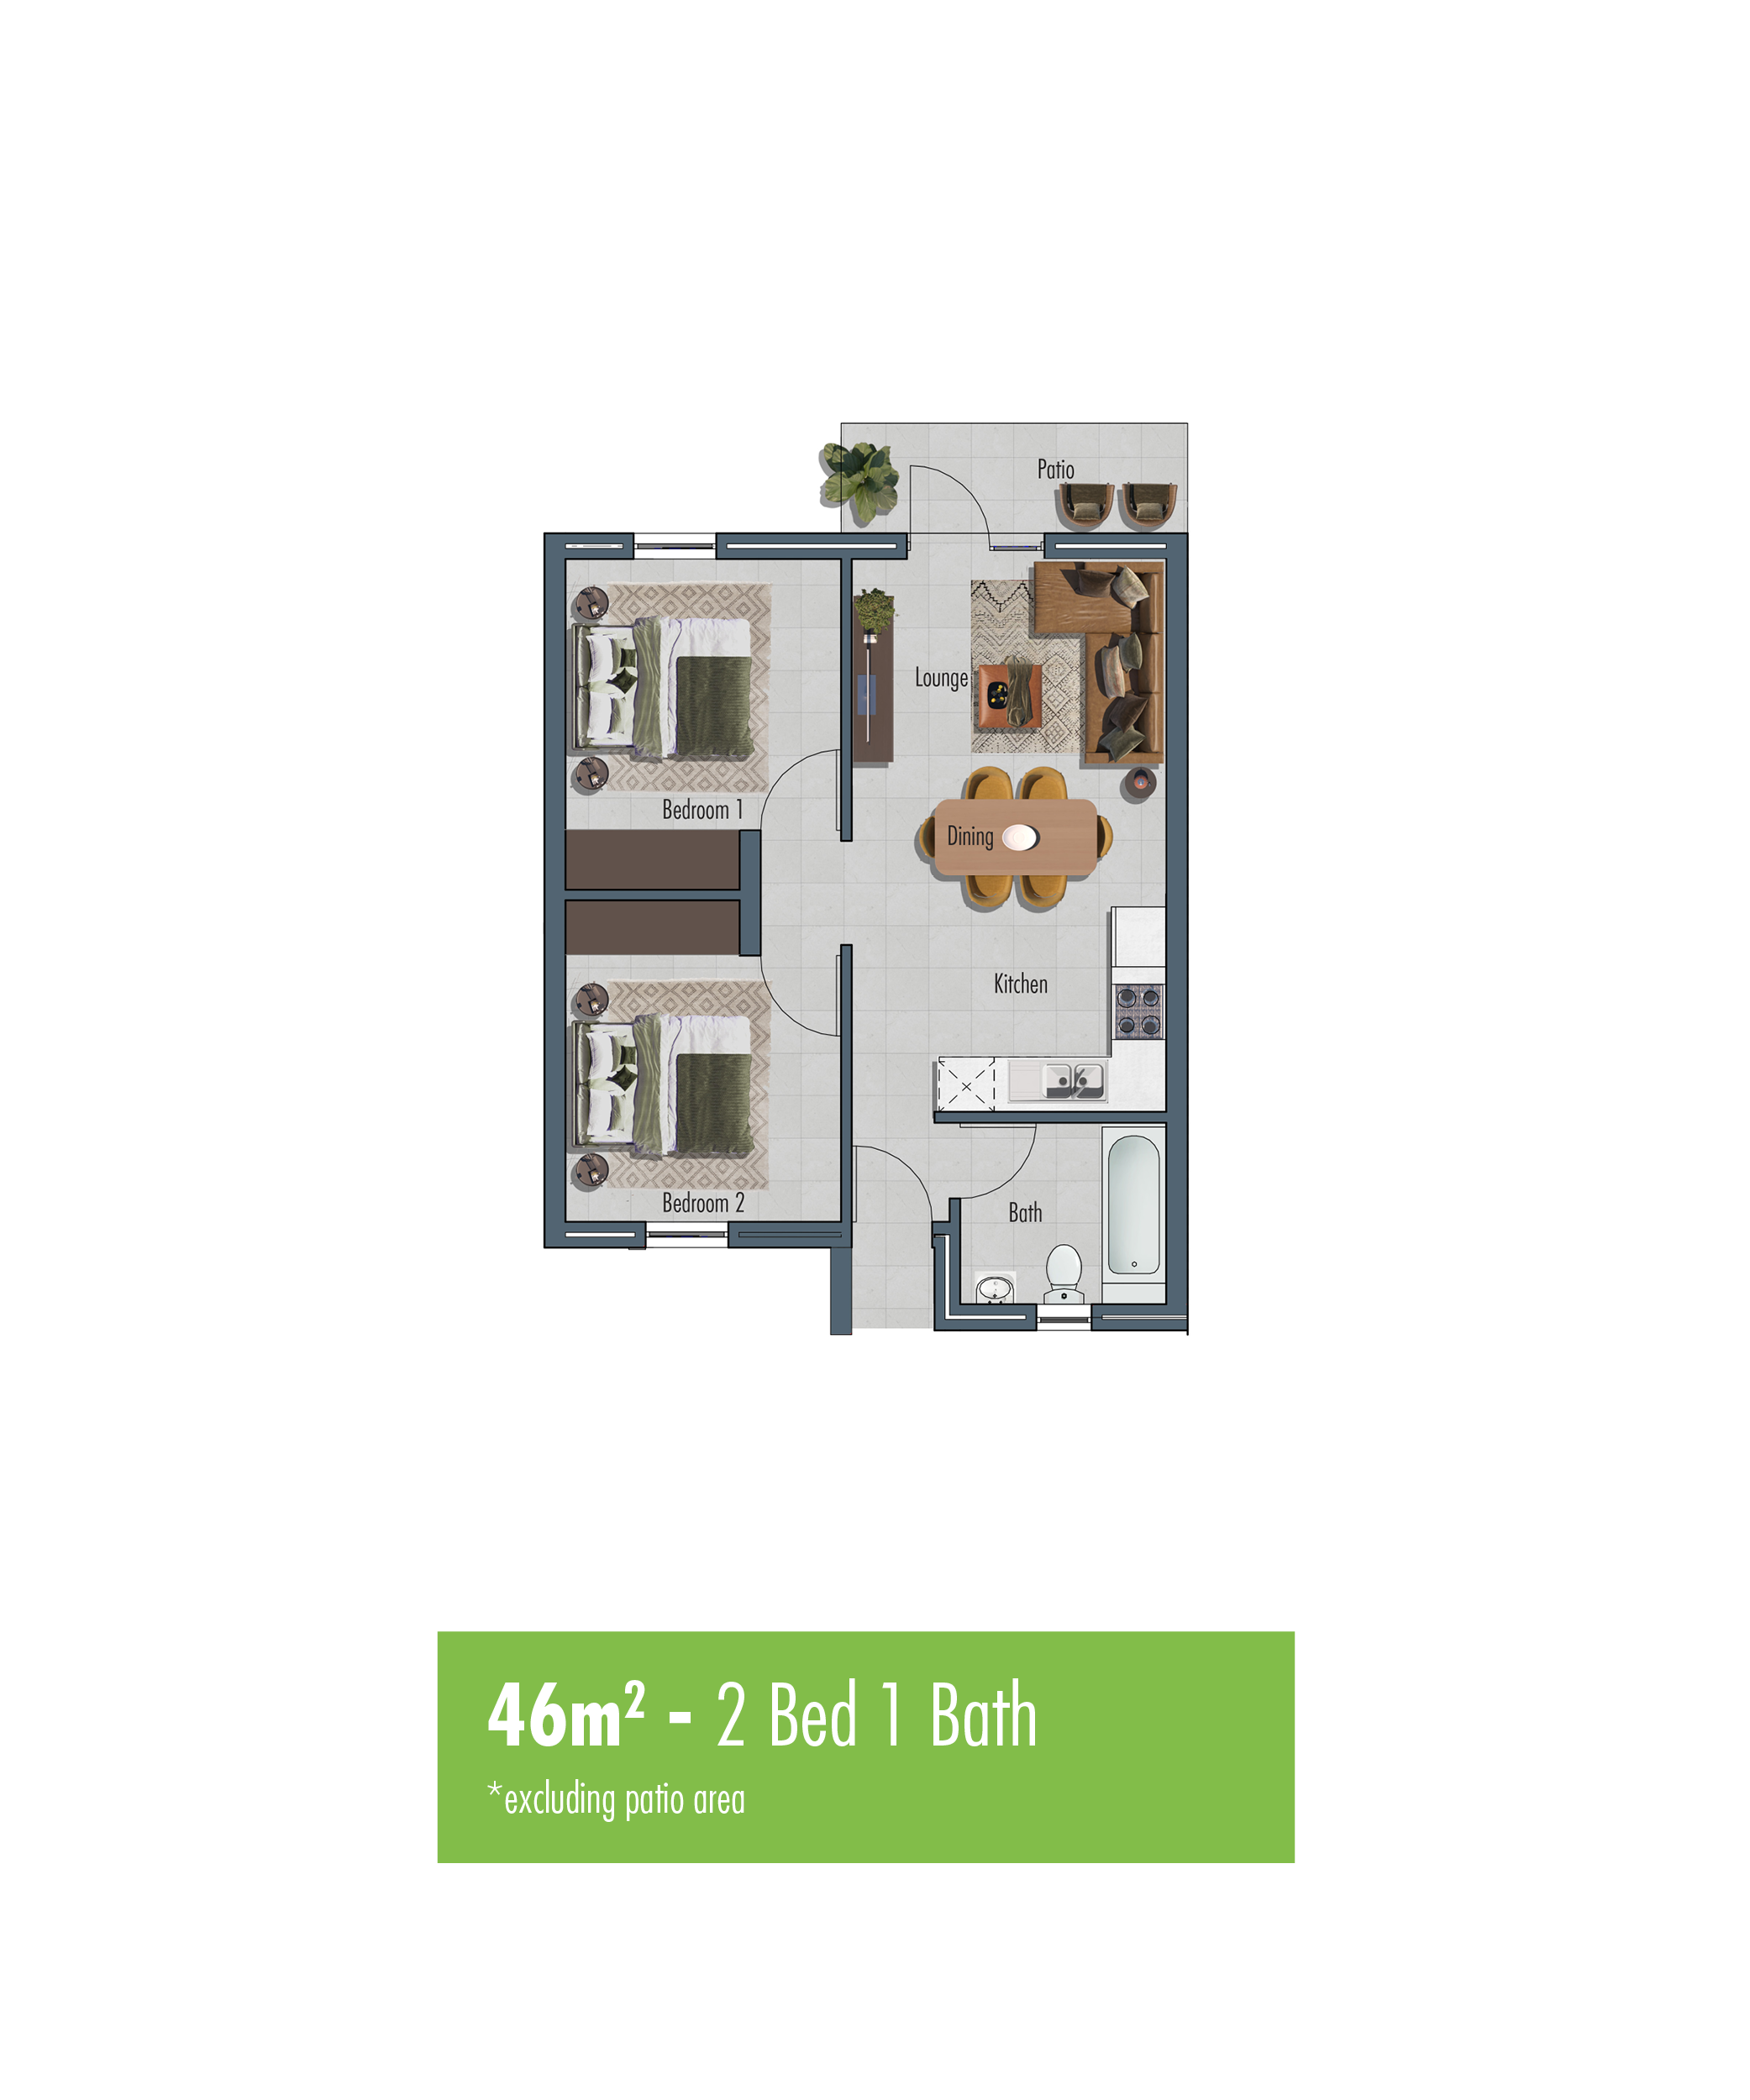 MD588 Floorplans with dollhouses thumbnails5 5